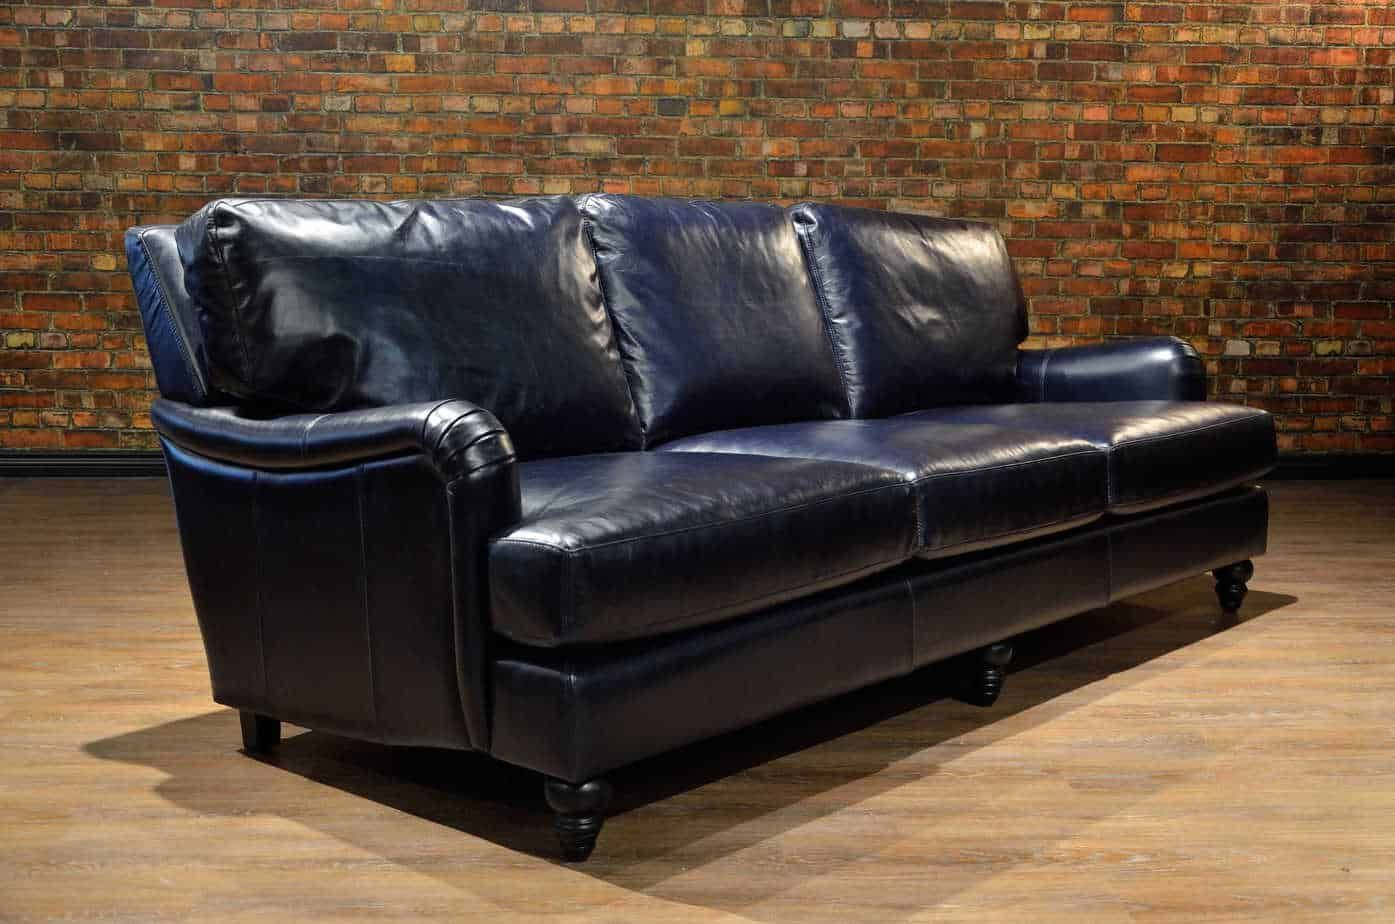 Today S Feature The Old English Leather Sofa Available As A Sofa Love Seat And Chair Down Fill Standard In 2020 Leather Sofa Leather Sofa Sale Leather Furniture